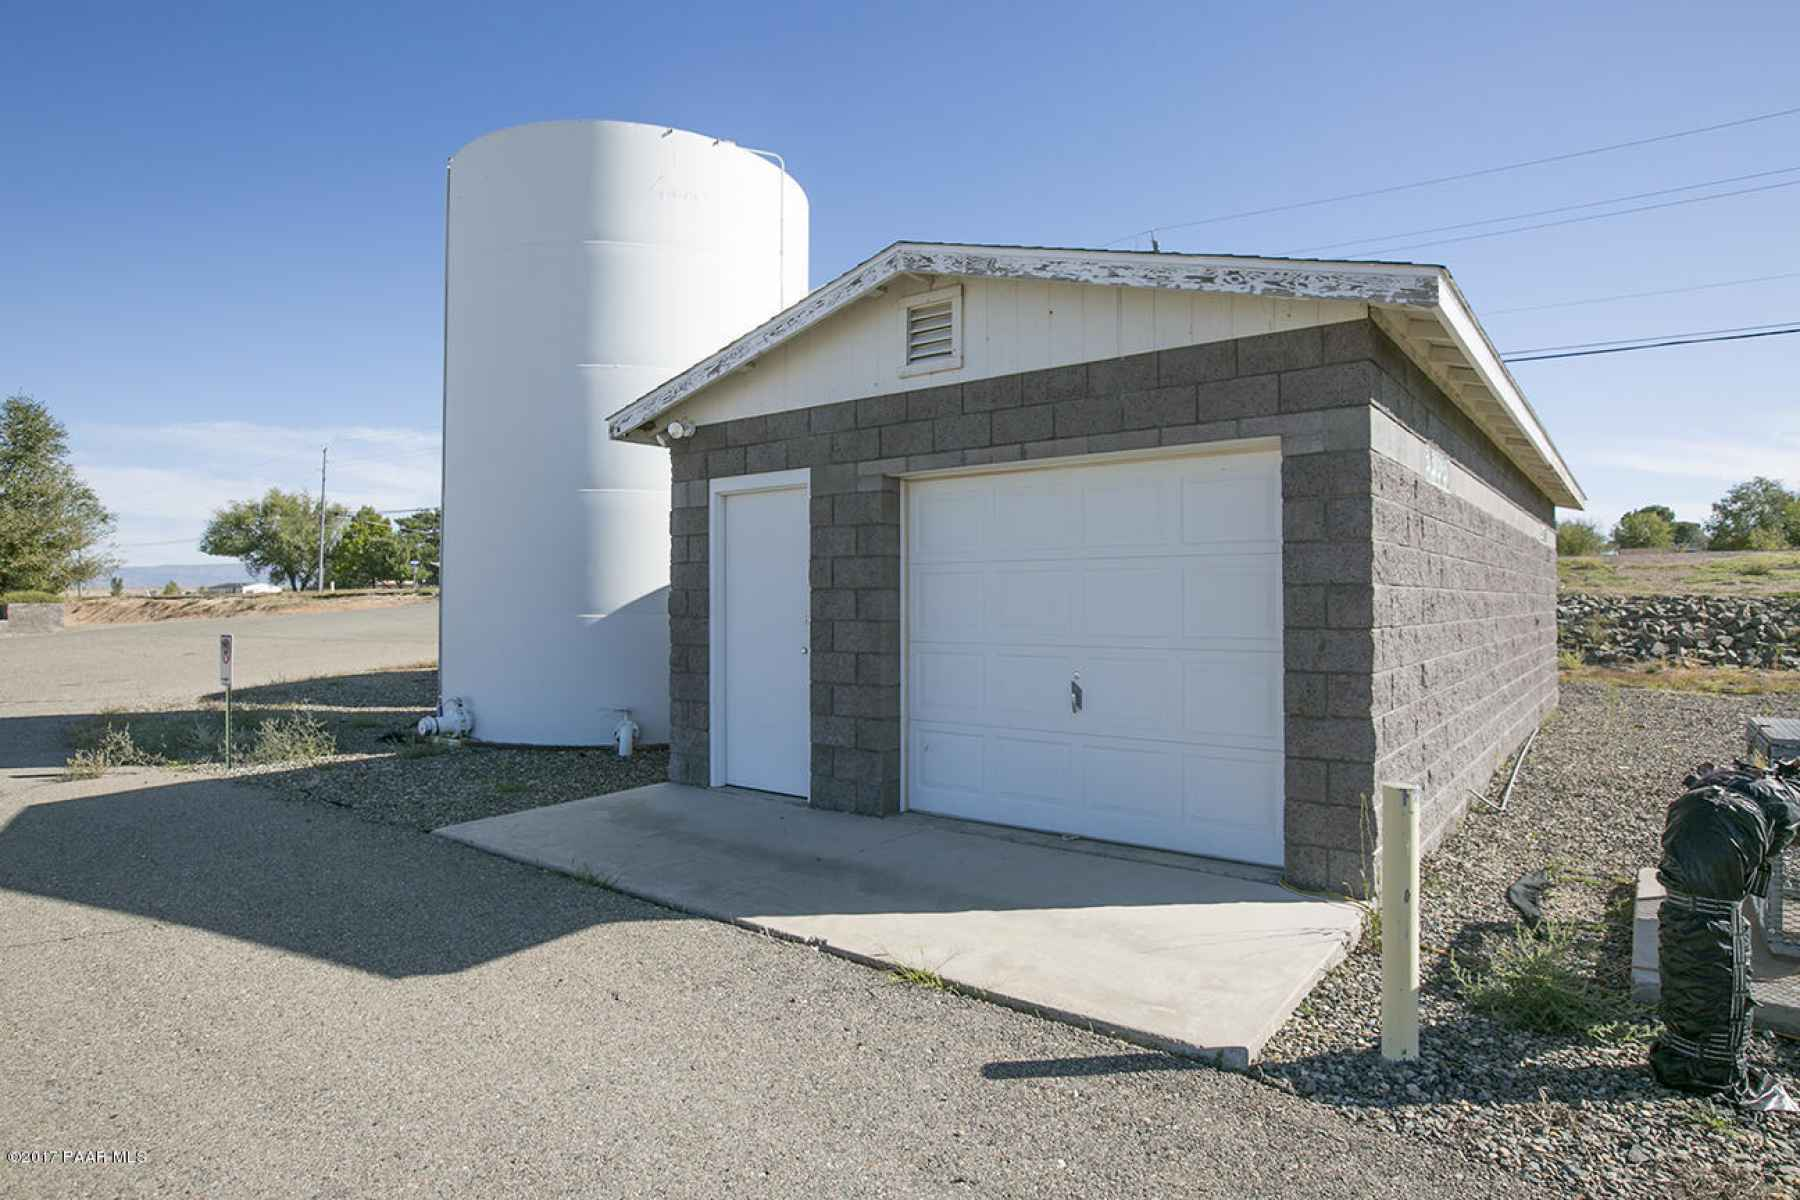 Well House and Storage Tanks